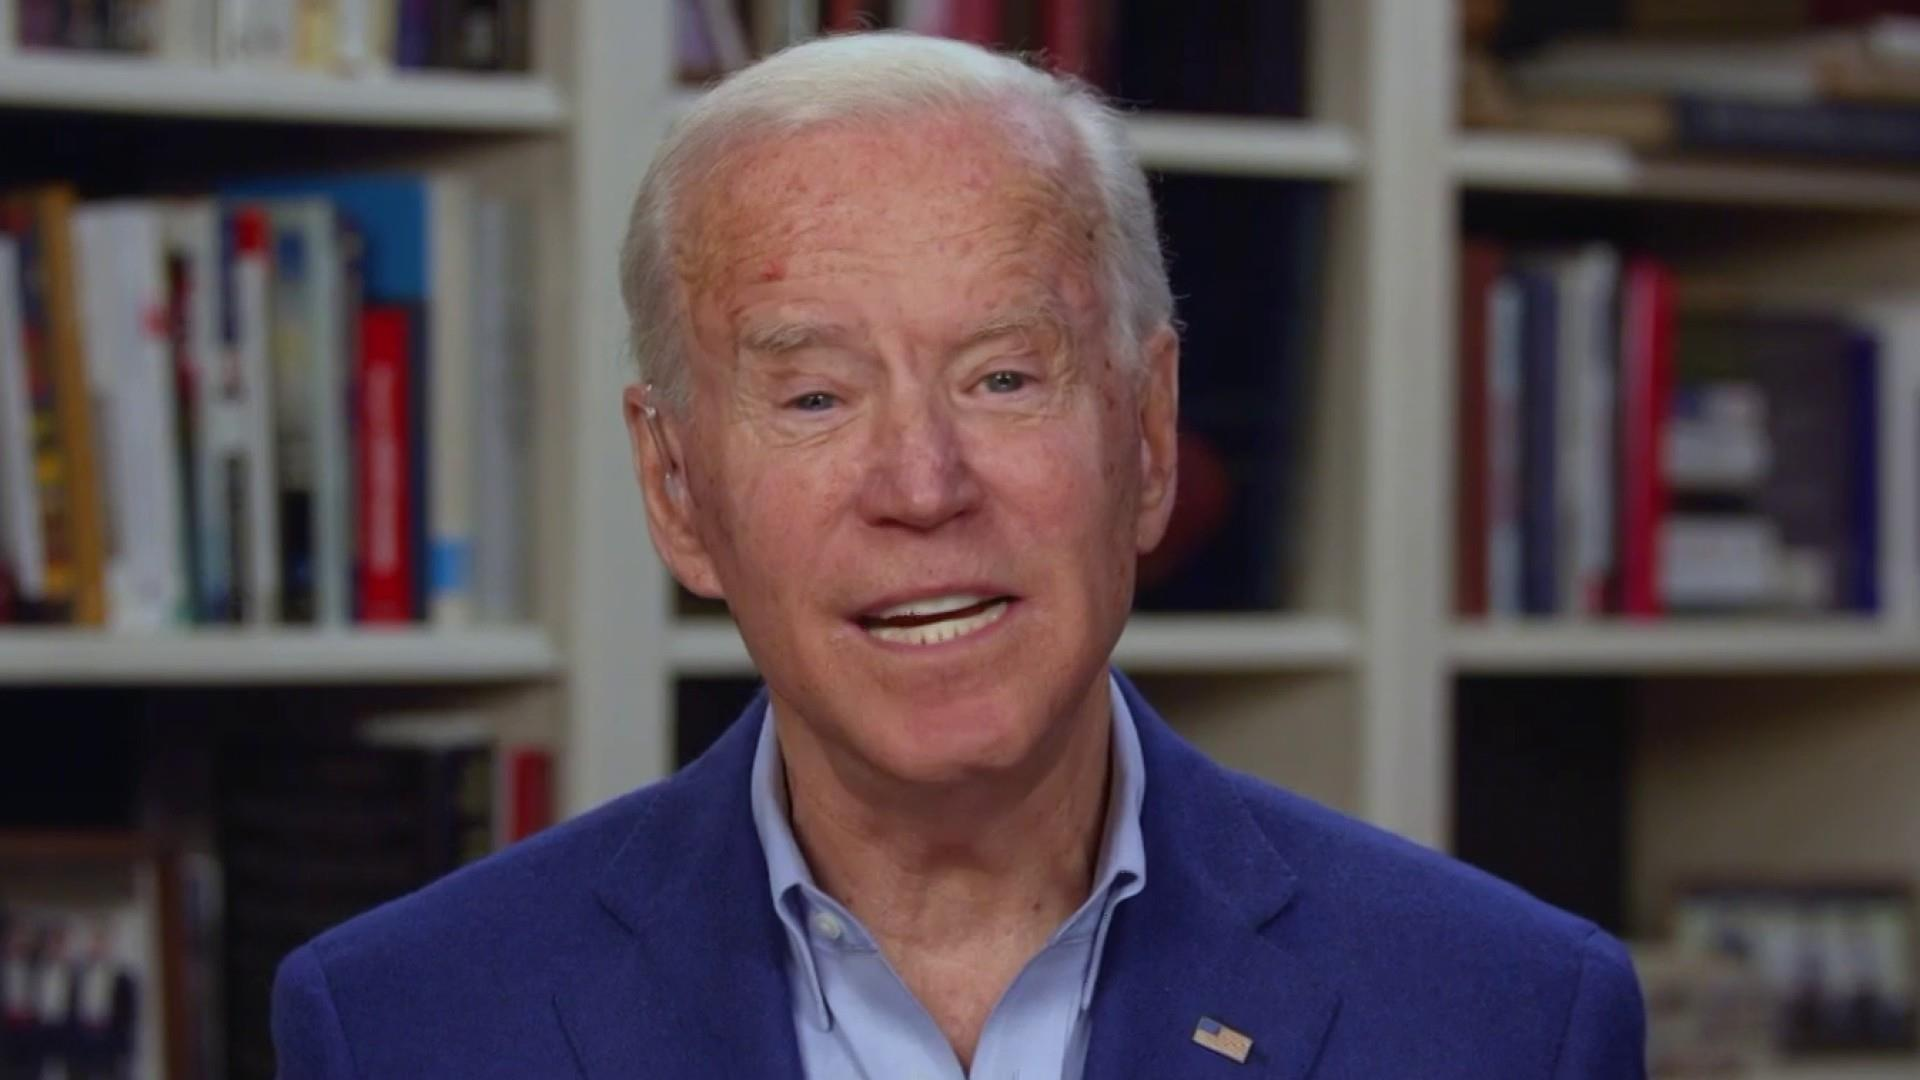 The coronavirus crisis hasn't changed Joe Biden's mind on 'Medicare for All'